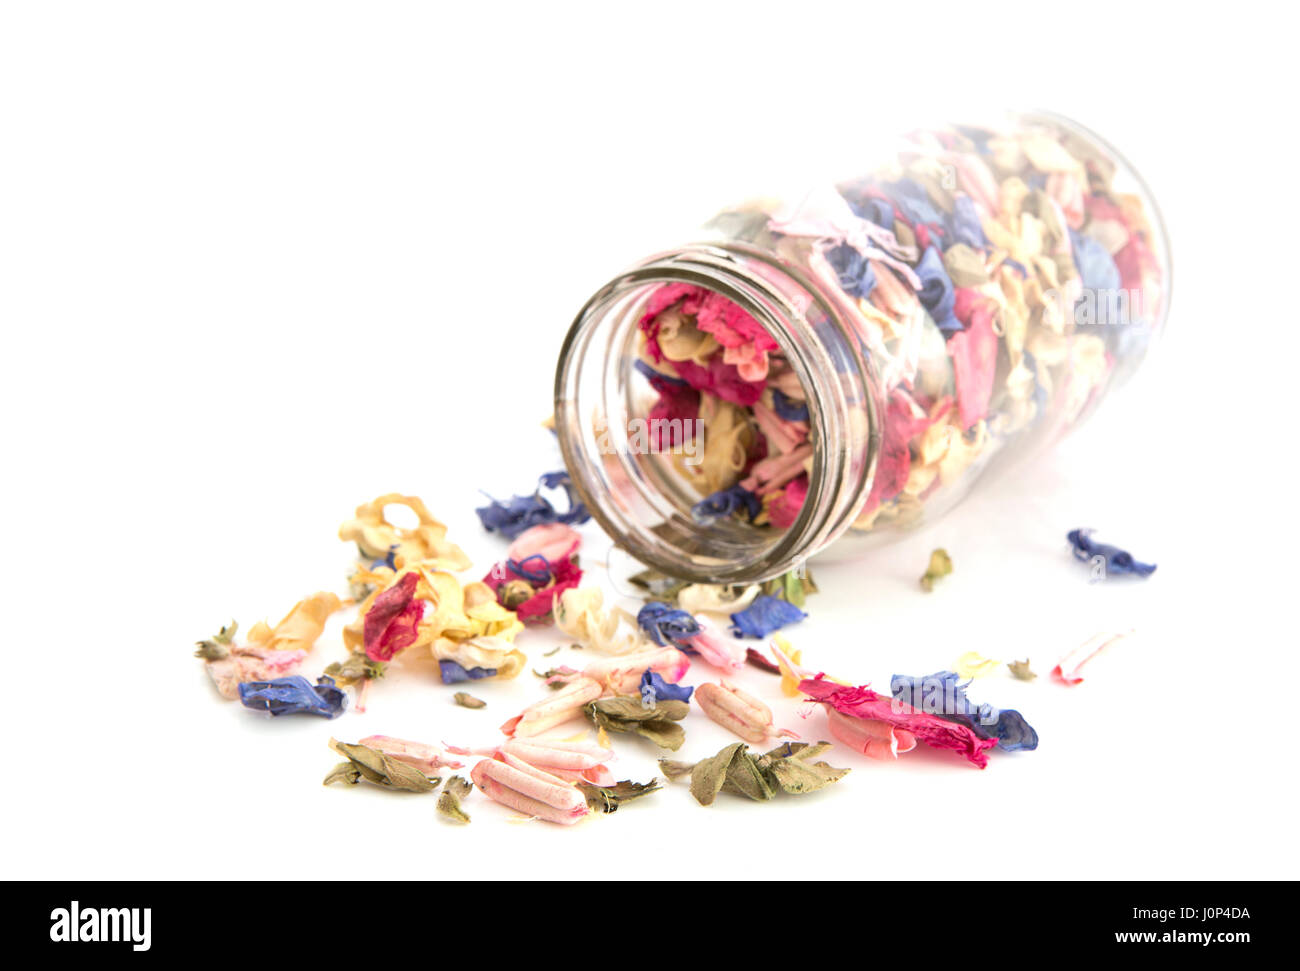 Colourful Potpourri in a jar on a white background with shallow depth of field - Stock Image